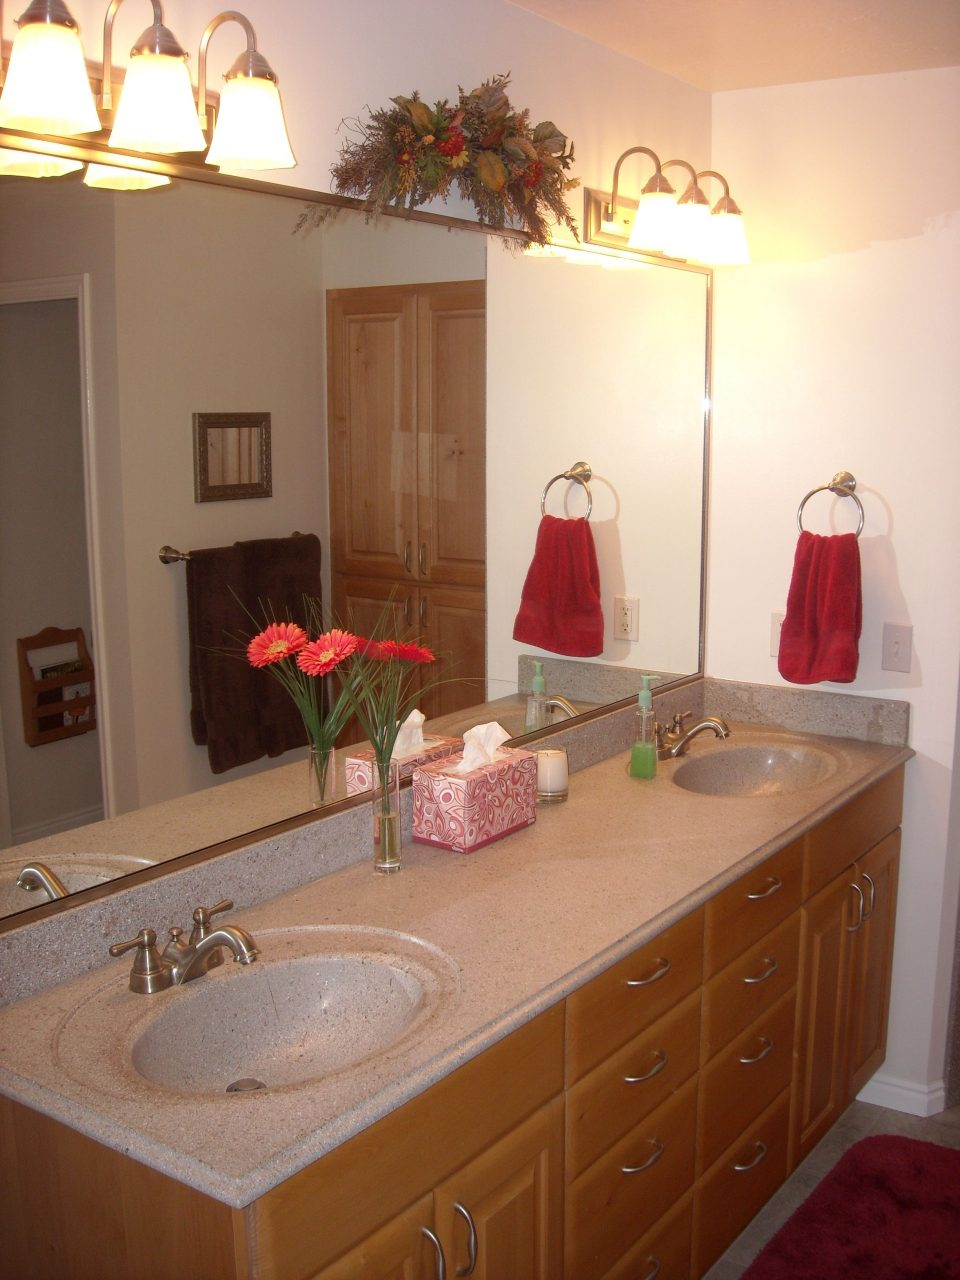 Bathroom Remodel Jack And Jill Sinks With Double Light Sets And